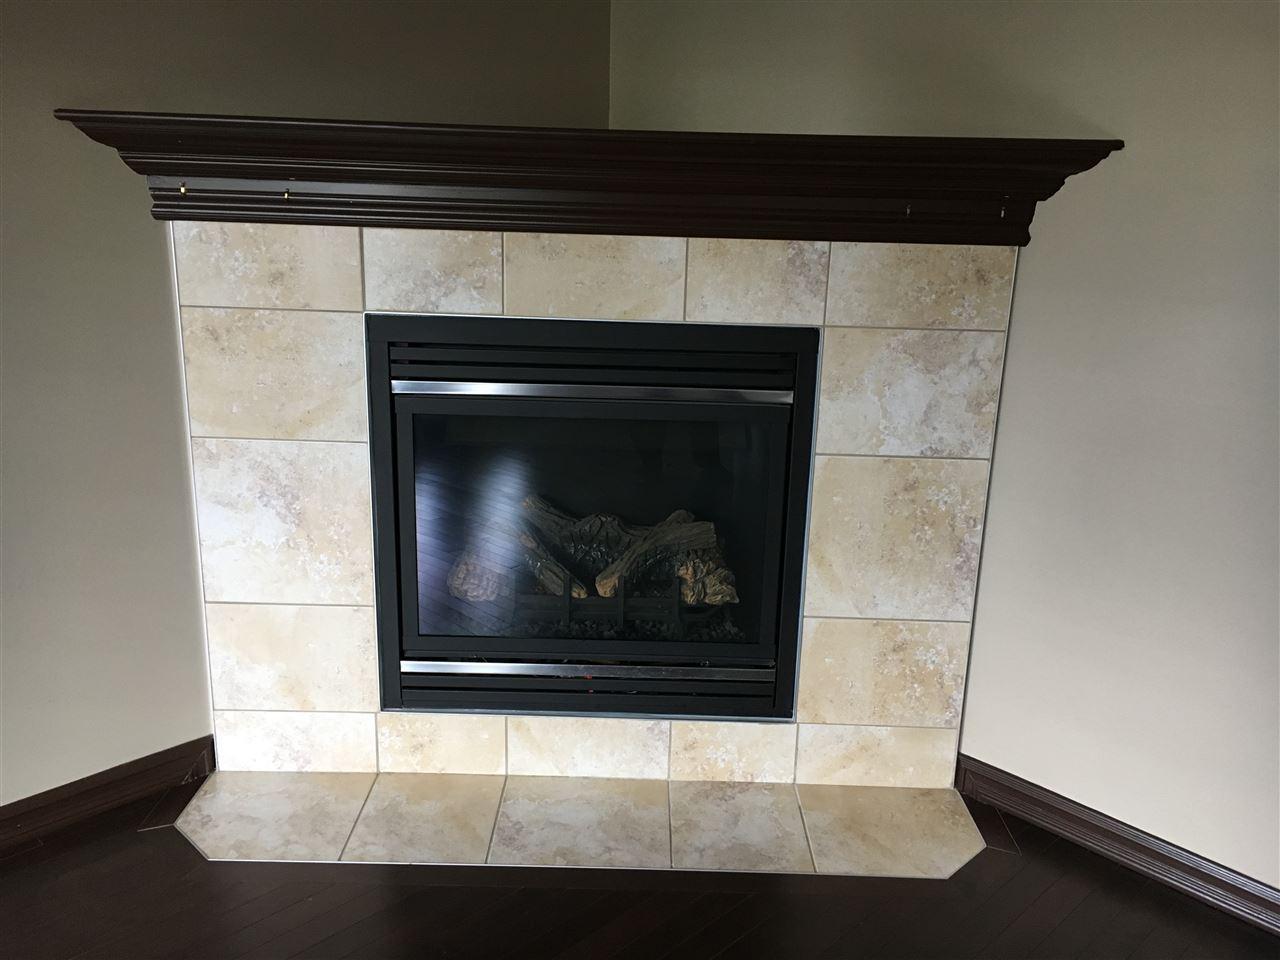 Close up of the Corner Gas Fireplace in the Living Room showing the Ceramic Tile Surround and Wood Mantle.